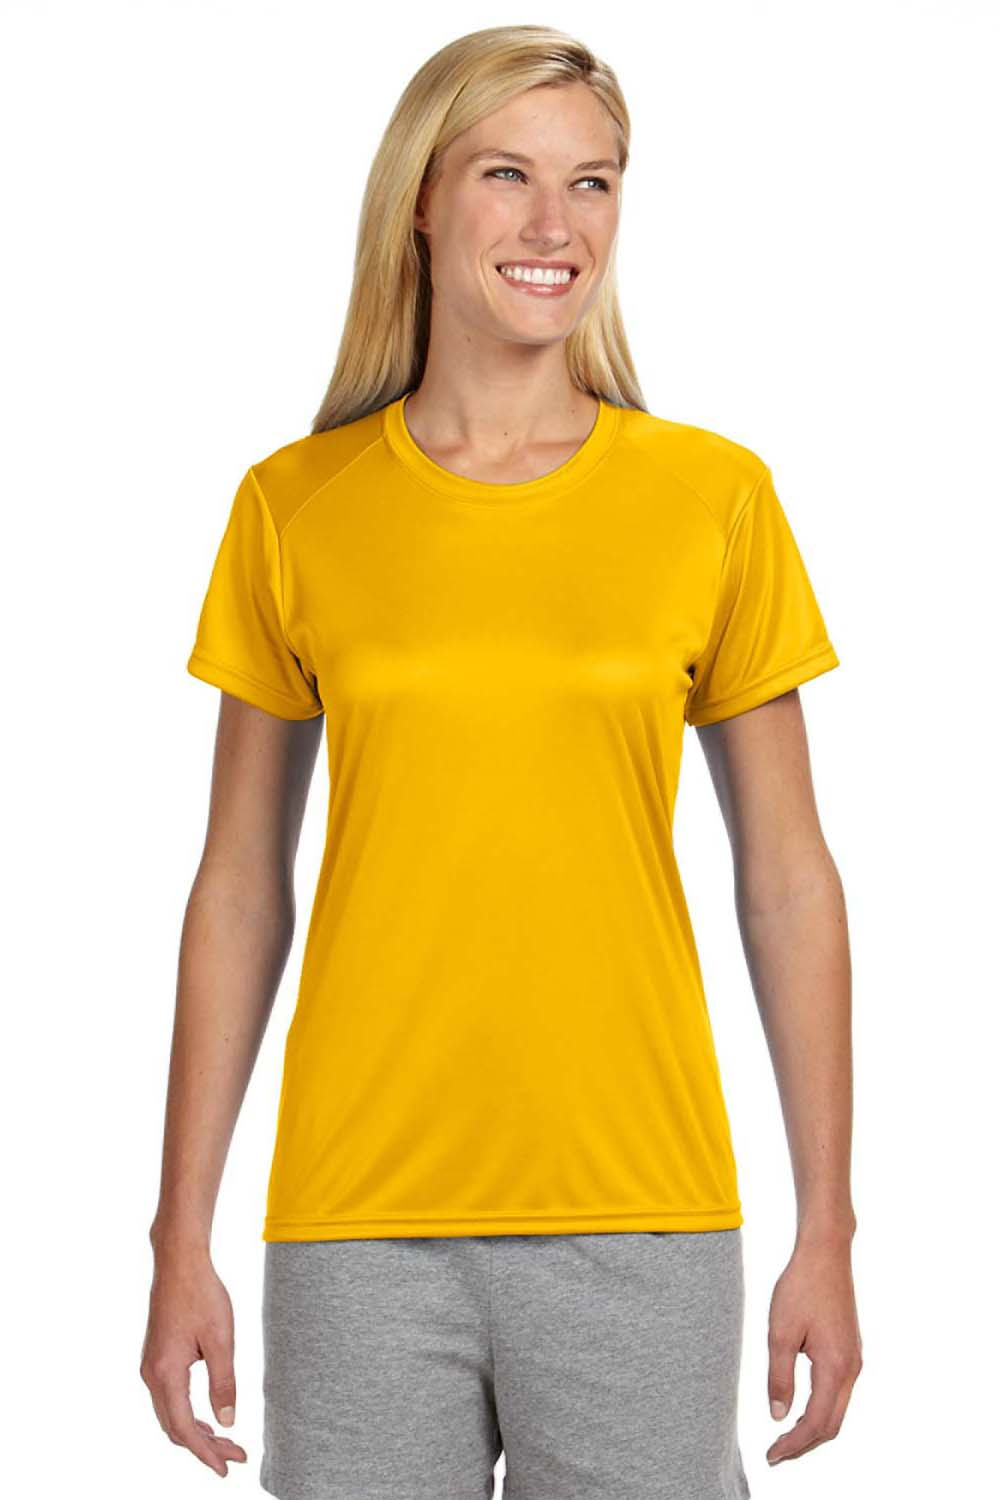 A4 NW3201 Womens Cooling Performance Moisture Wicking Short Sleeve Crewneck T-Shirt Gold Front